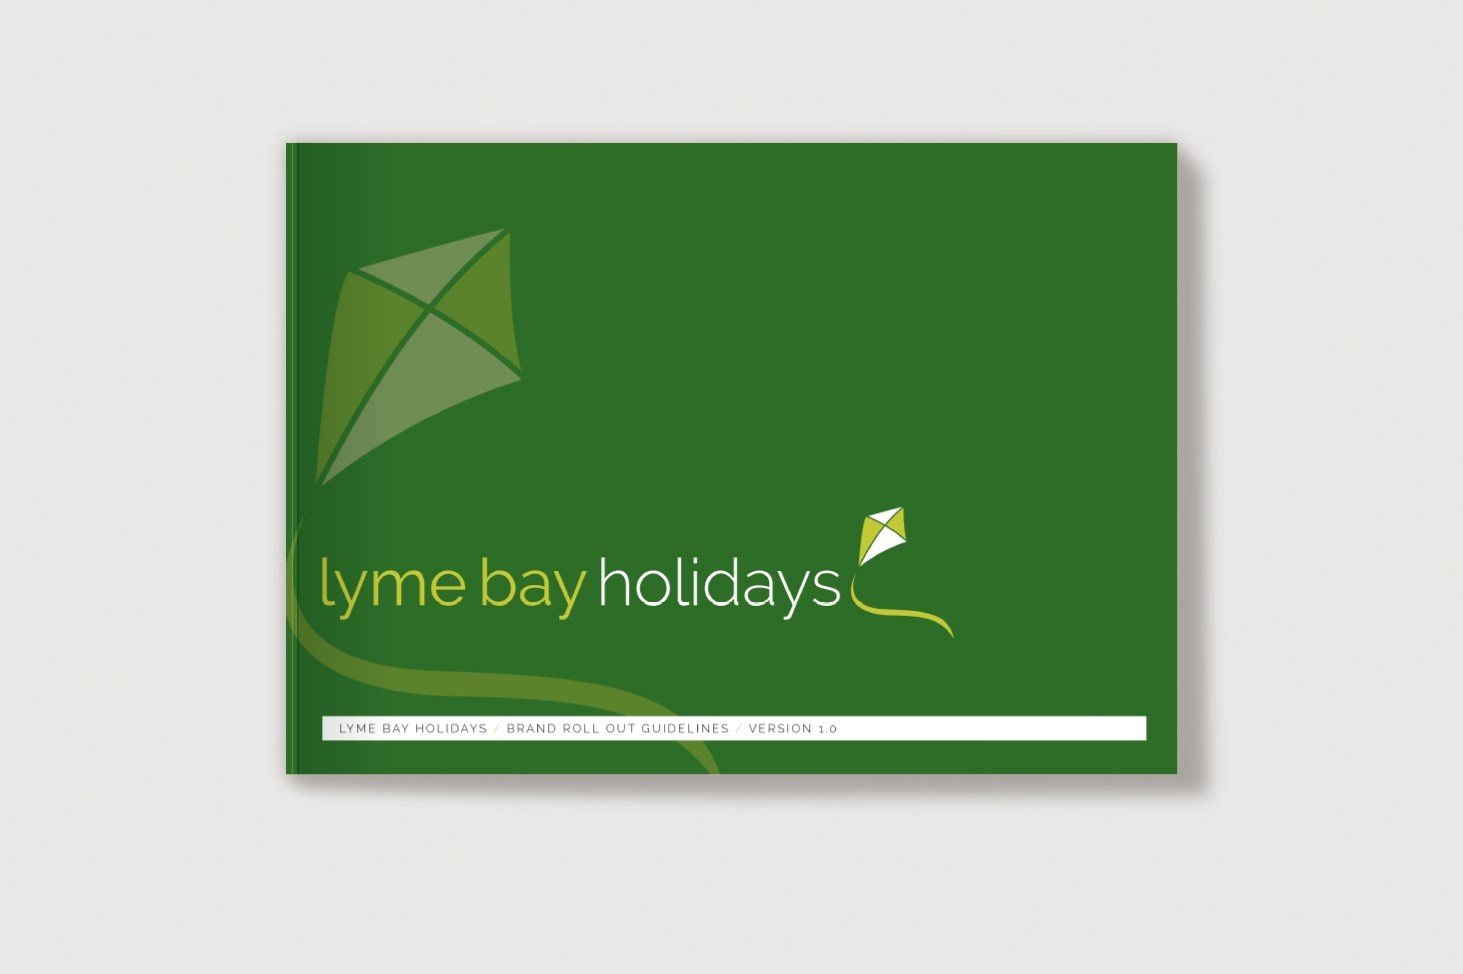 Cover of the Brand Guidelines for Lyme Bay Holidays